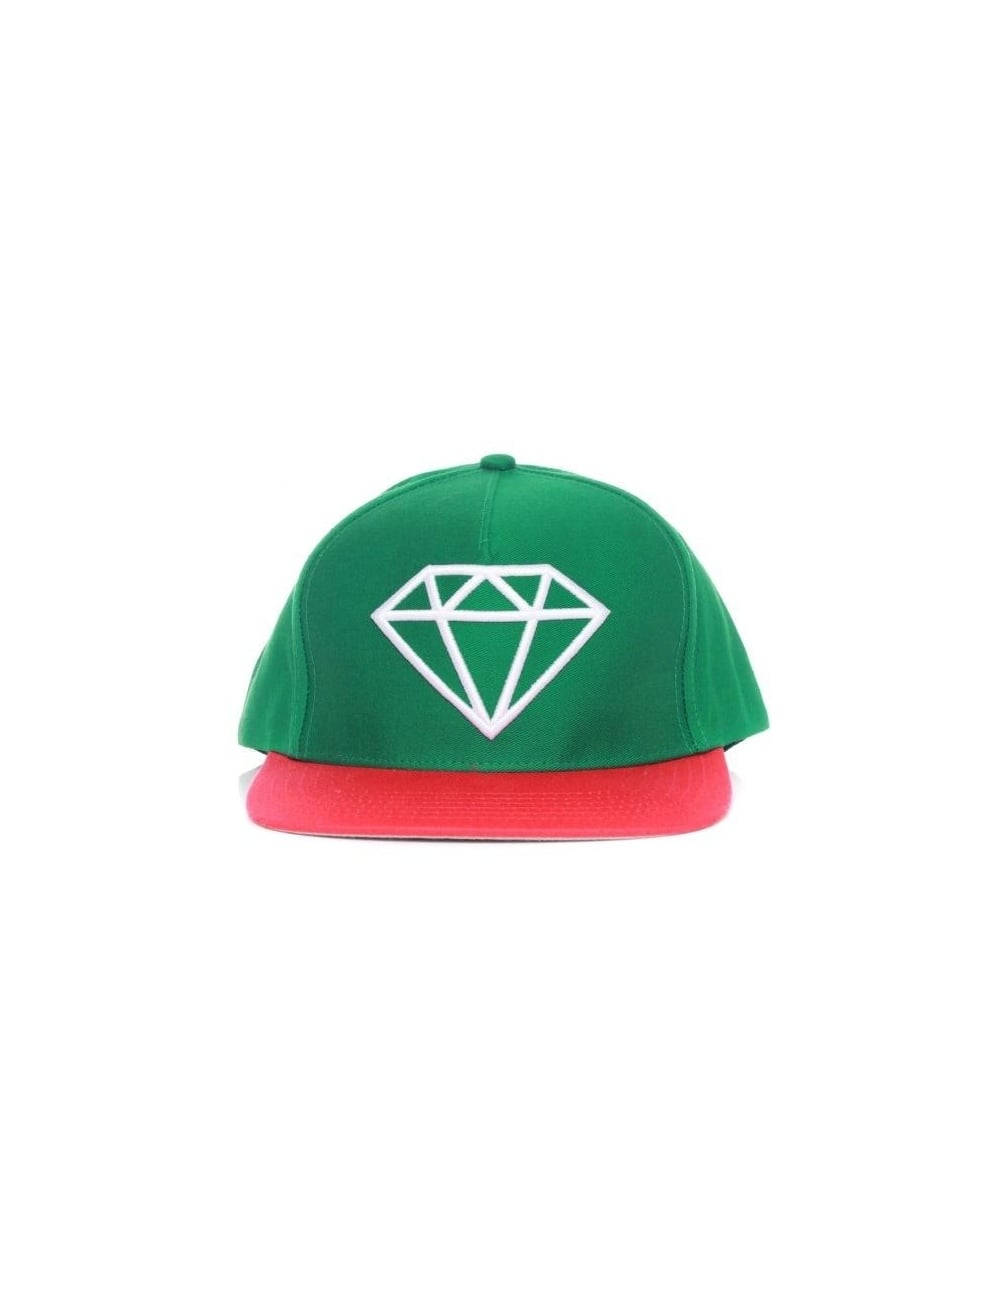 c9a169ad134 Diamond Supply Co Rock Snapback Hat - Green White - Hat Shop from ...